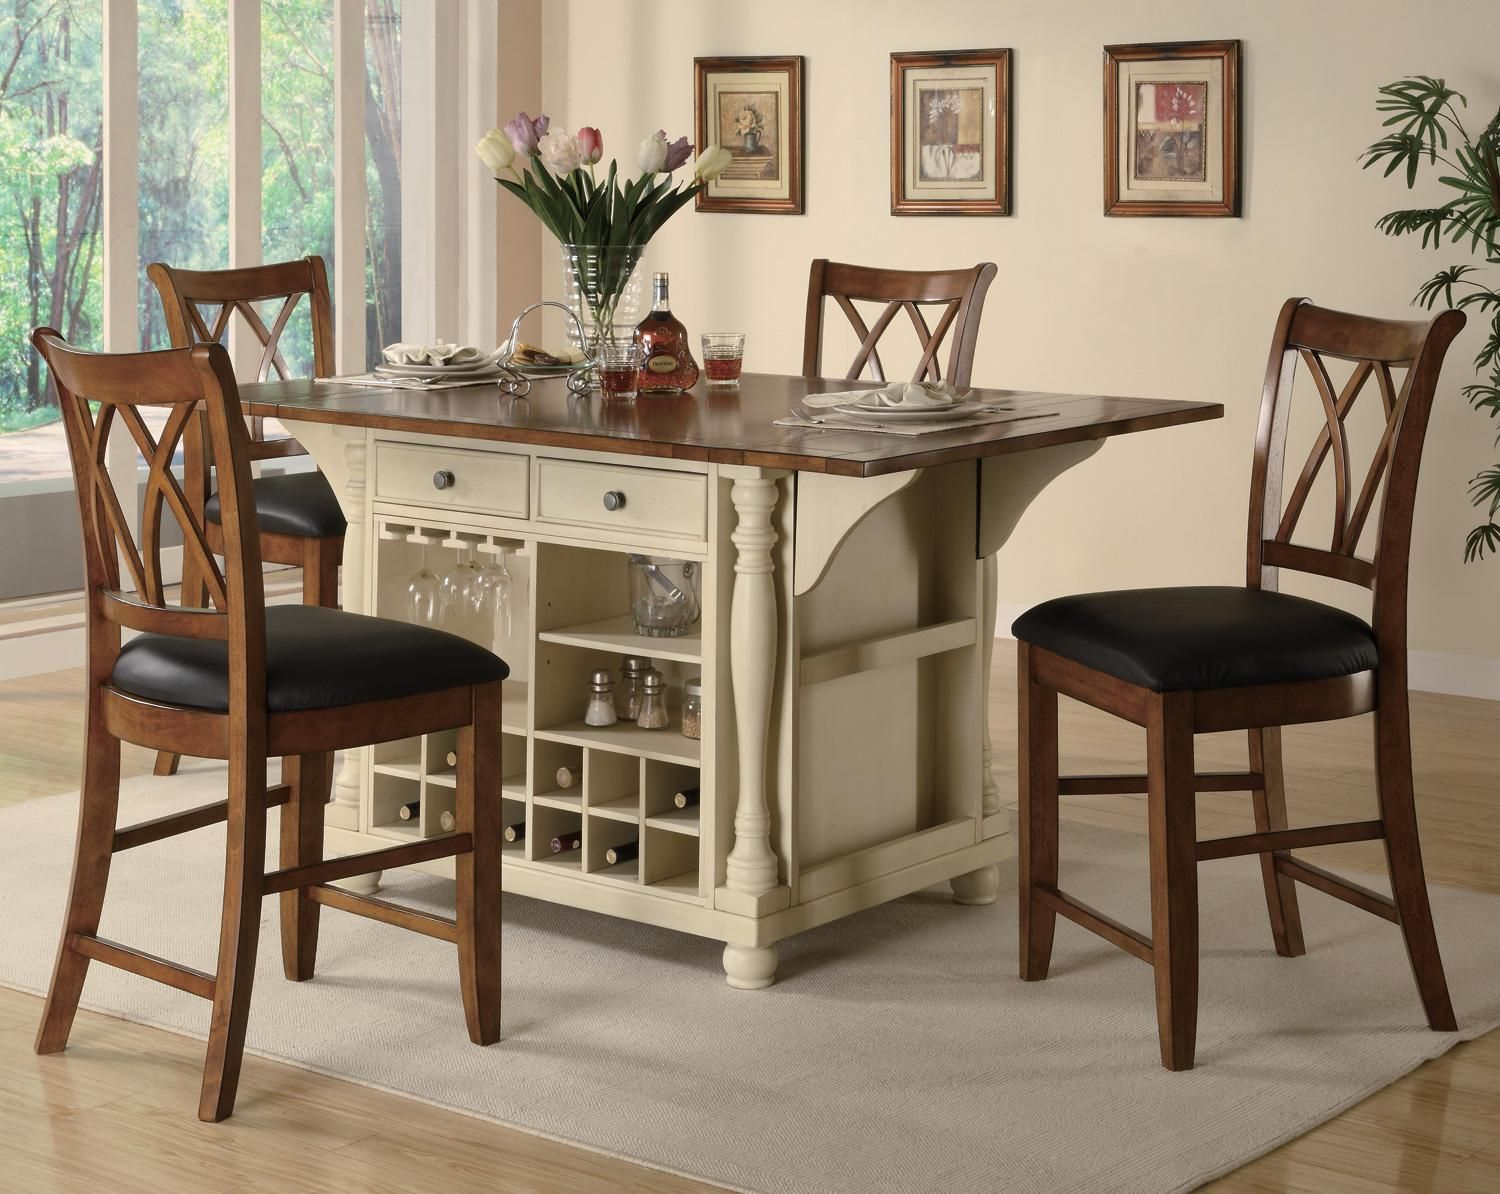 Bar Height Kitchen Table And Chairs Tall Kitchen Table And Chairs Dinette Sets Kitchen Table